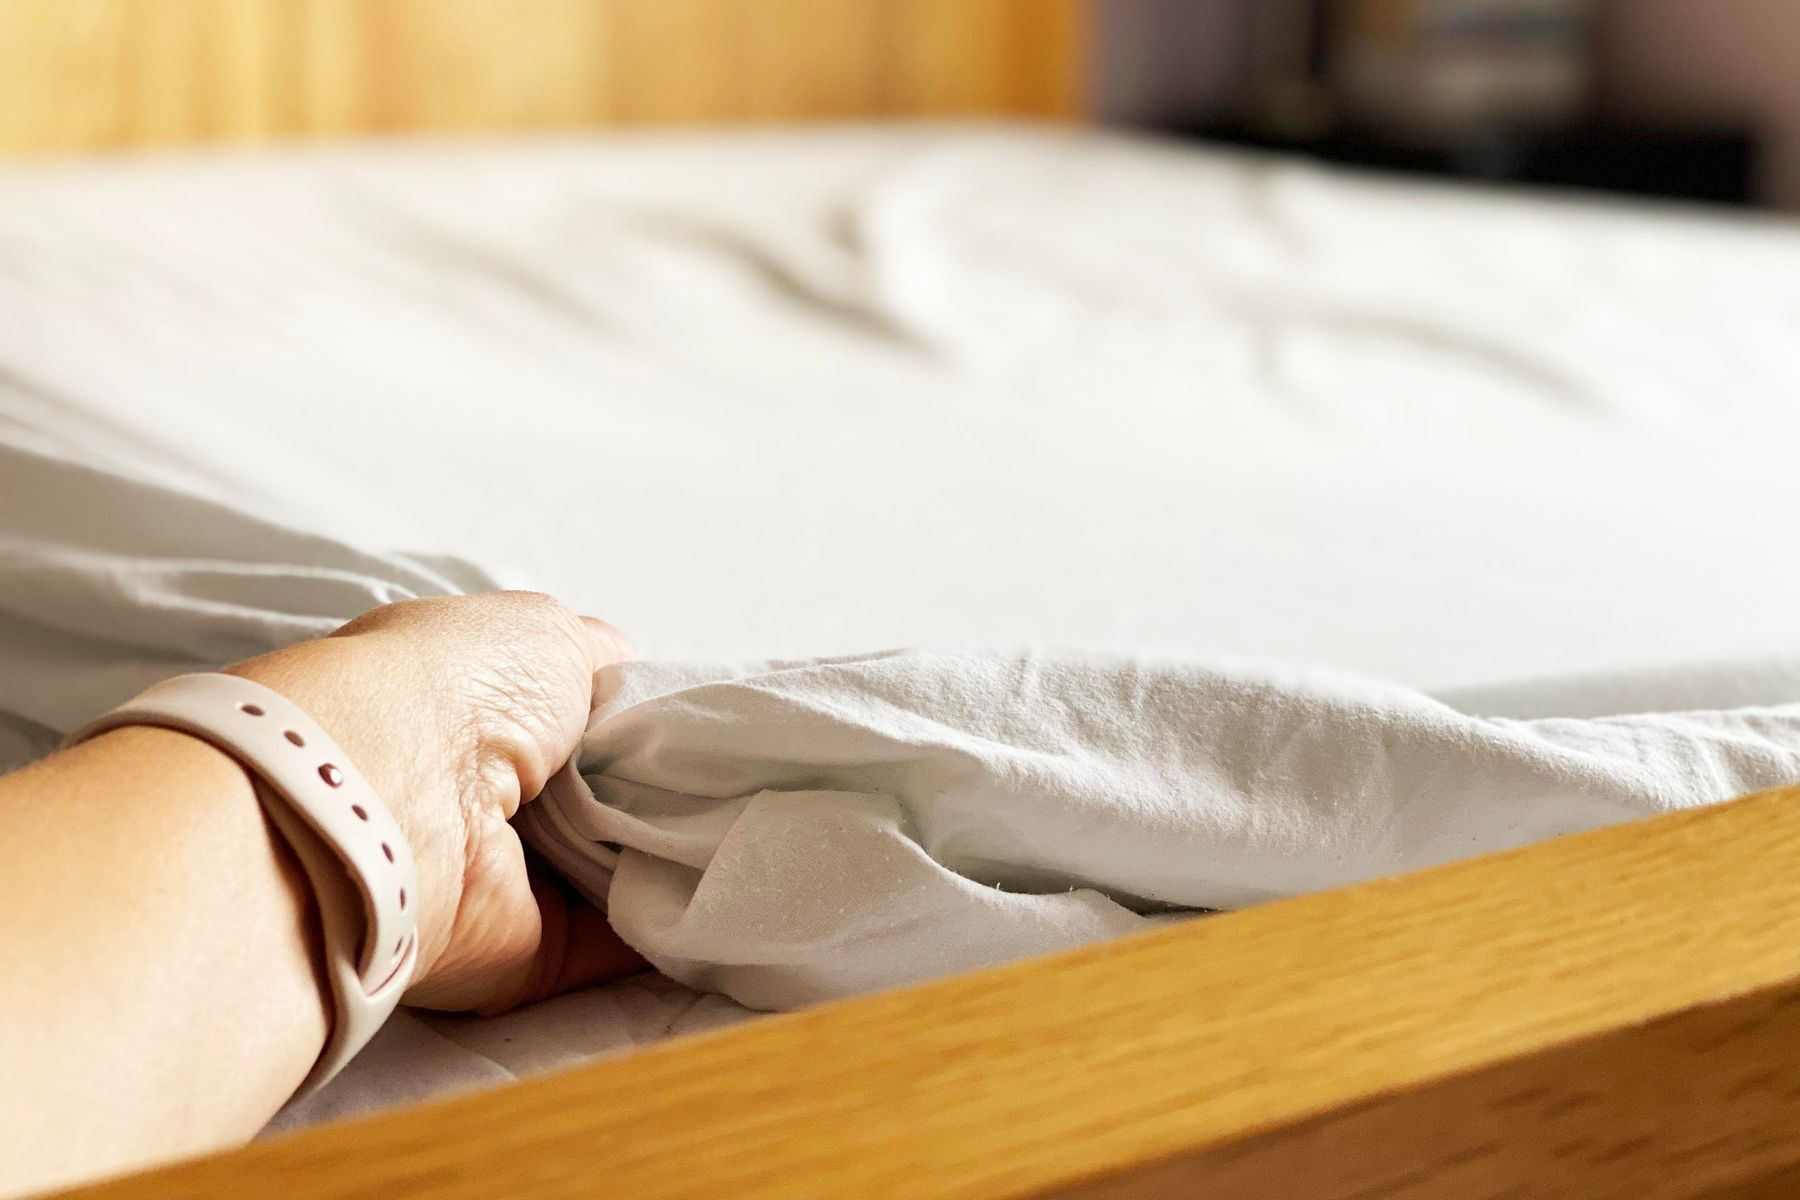 A fitted bedsheet being put on a bed